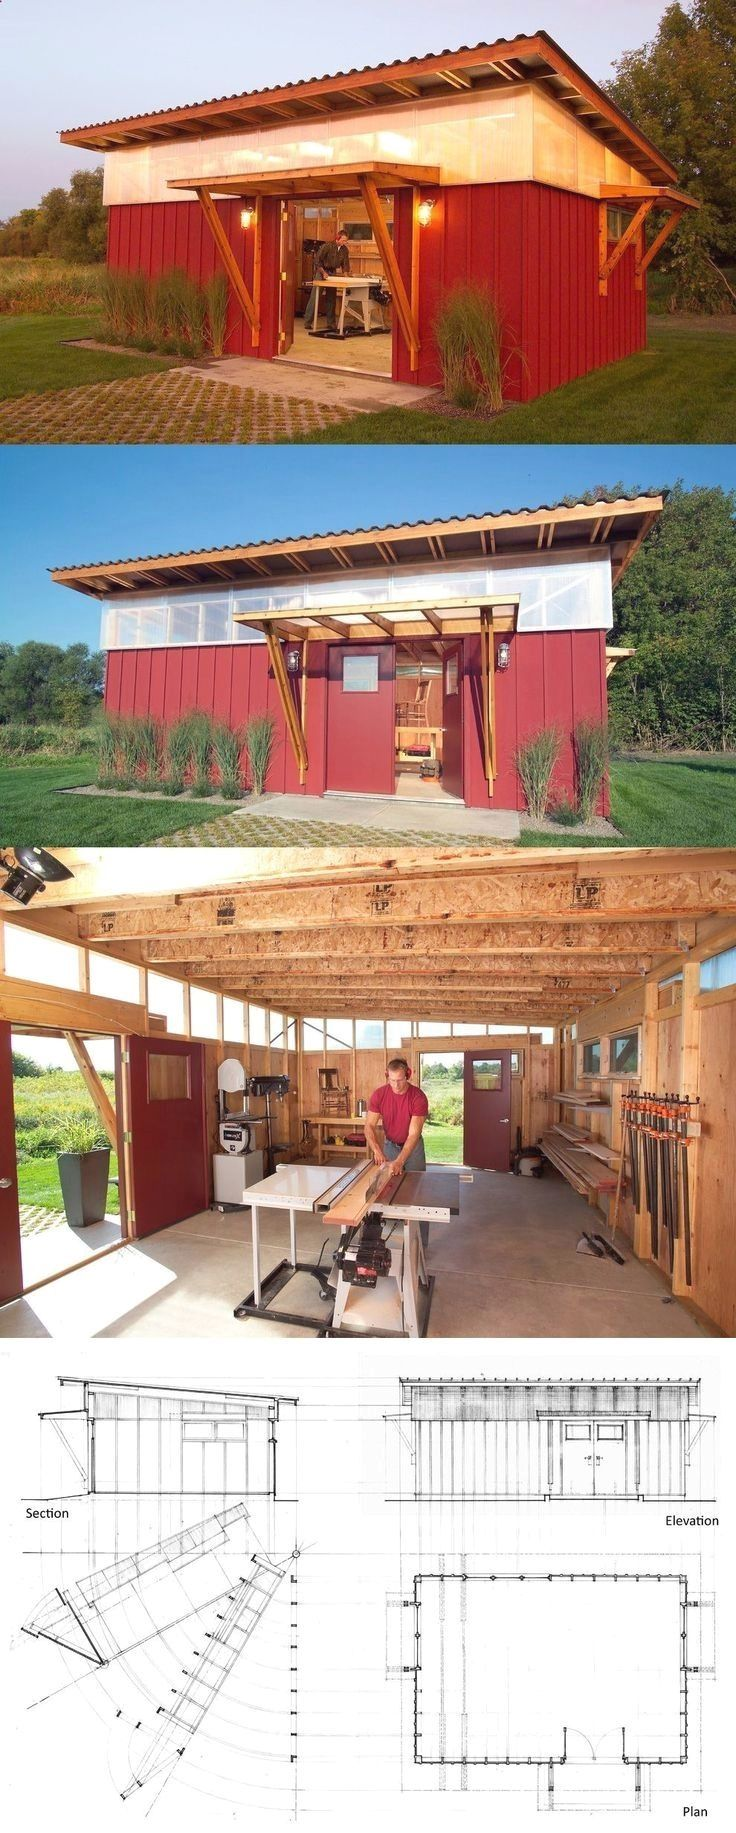 What Makes Good Shed Plans? Check Out THE PICTURE for